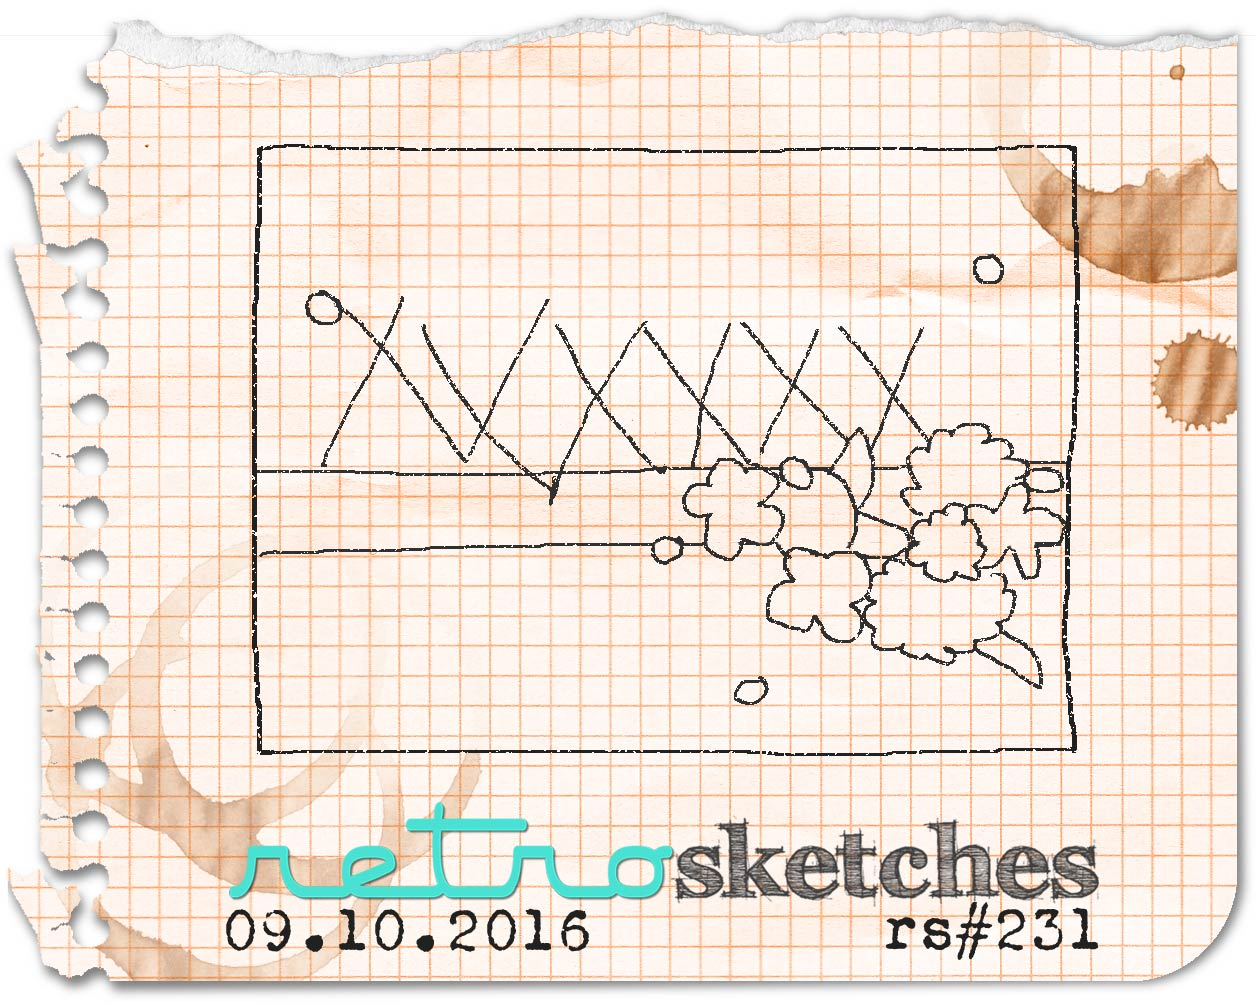 Retro Sketches Challenge #231